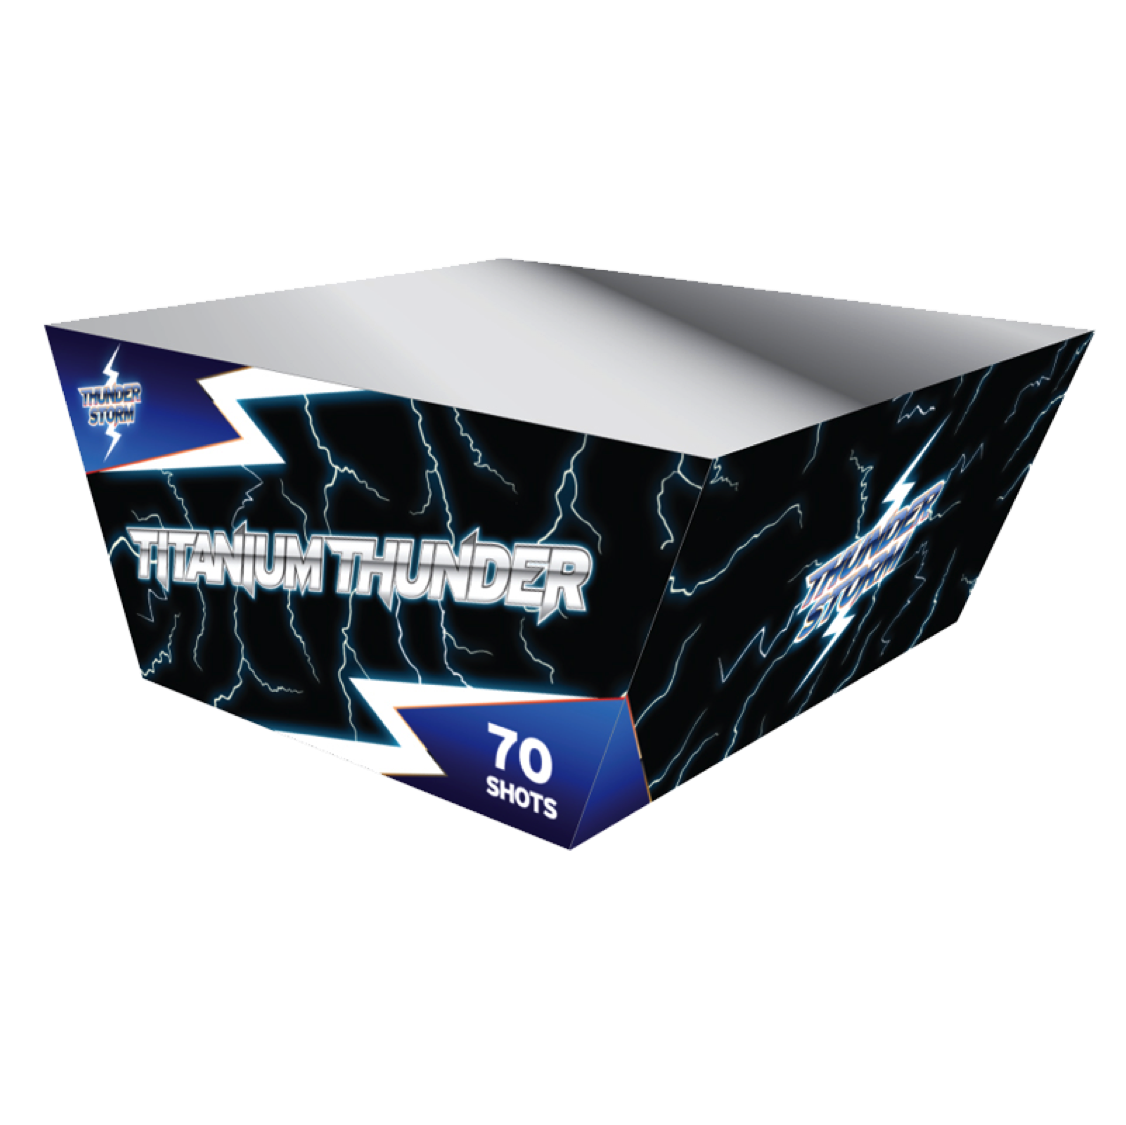 ART. 4403 TITANIUM THUNDER (TS-03), 70 SHOTS